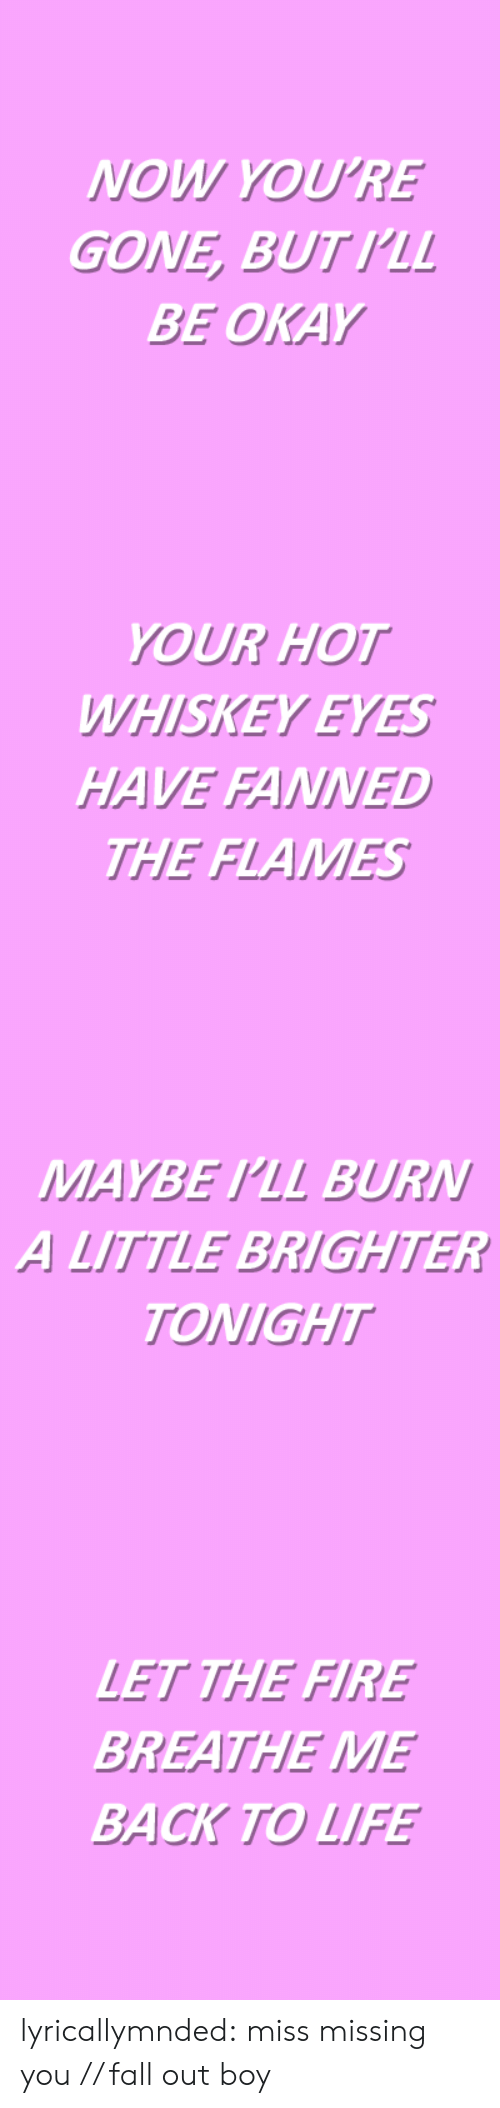 Fall, Fire, and Life: NOW YOU'RE  GONE, BUTIL  BE OKAY   YOUR HOT  WHISKEY EYES  HAVE FANNED  THE FLAMES   MAYBE PLL BURN  A LITTLE BRIGHTER  TONIGHT   LET THE FIRE  BREATHE ME  BACK TO LIFE lyricallymnded:  miss missing you // fall out boy